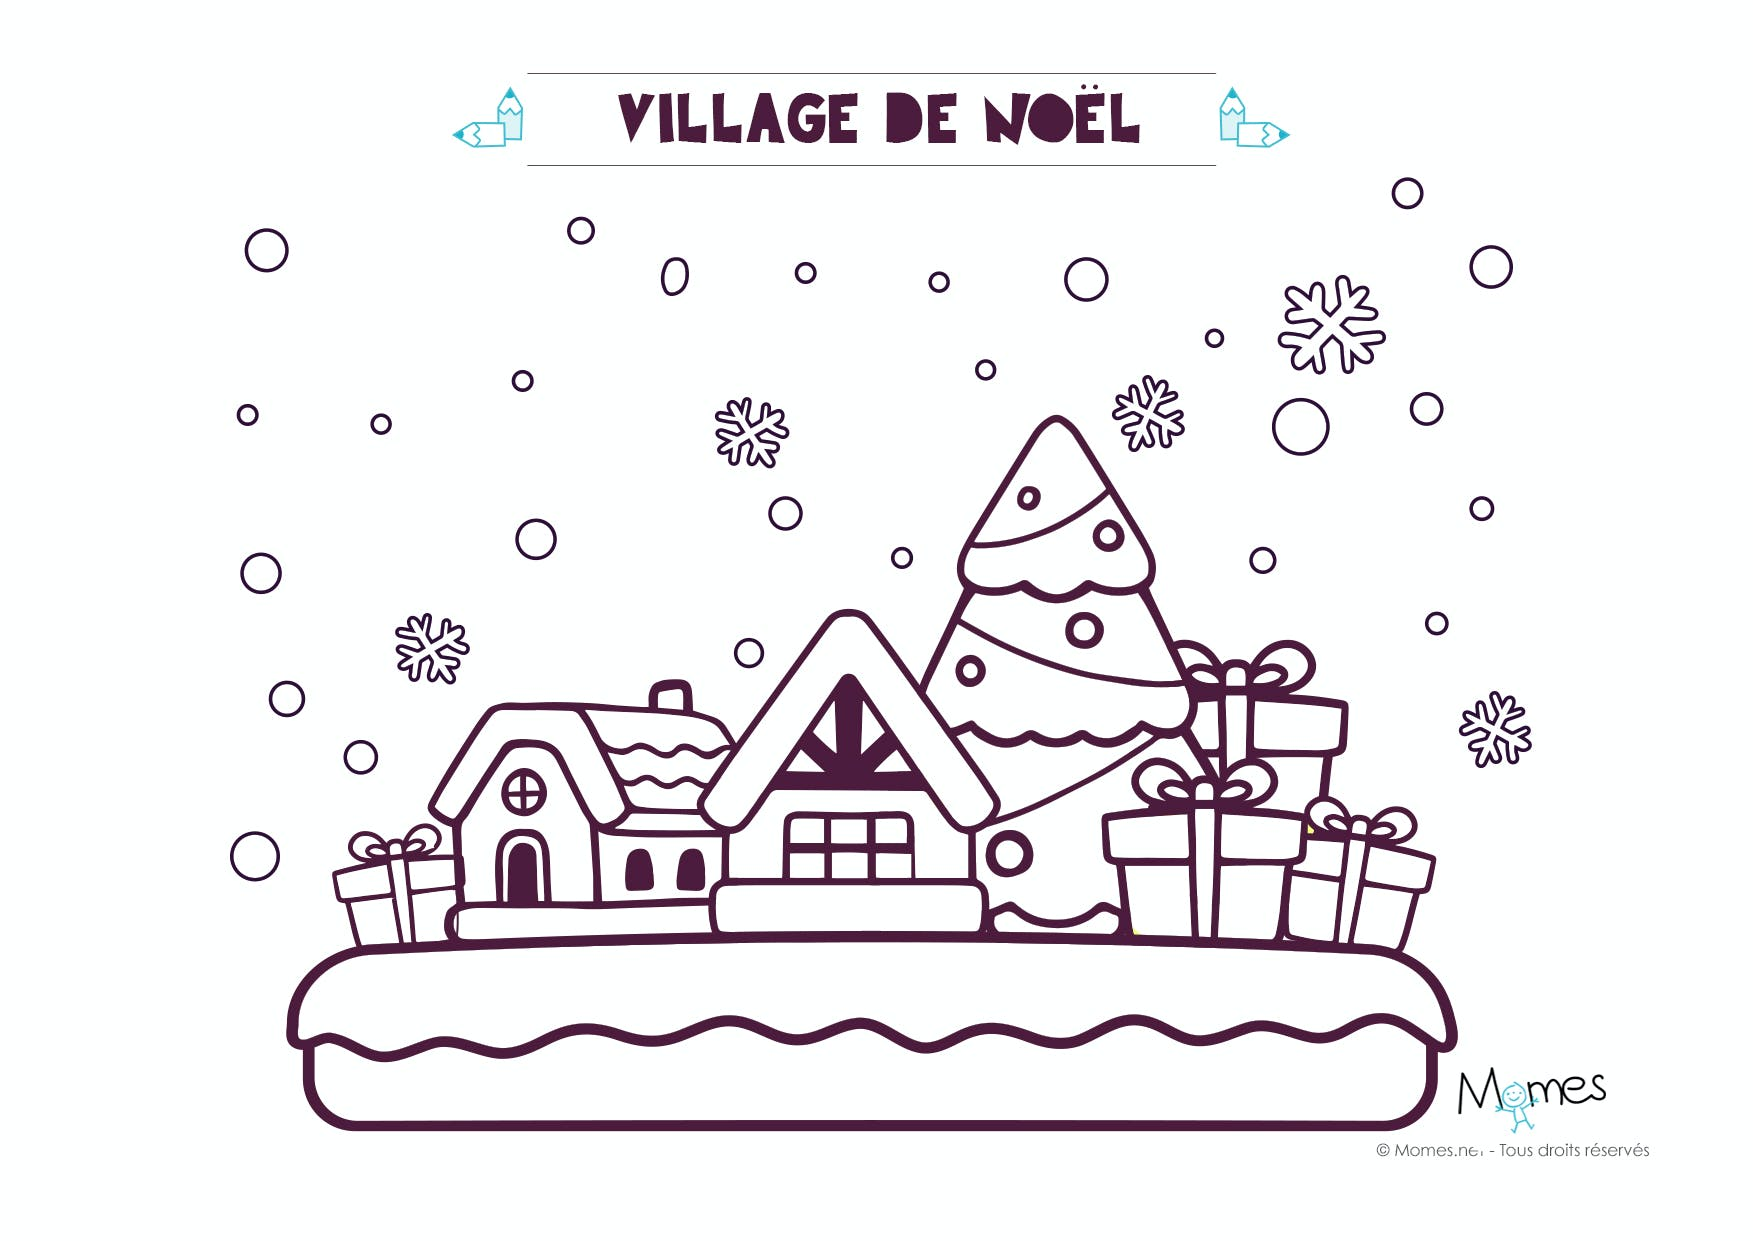 Coloriage de no l le village - Coloriage village de noel ...